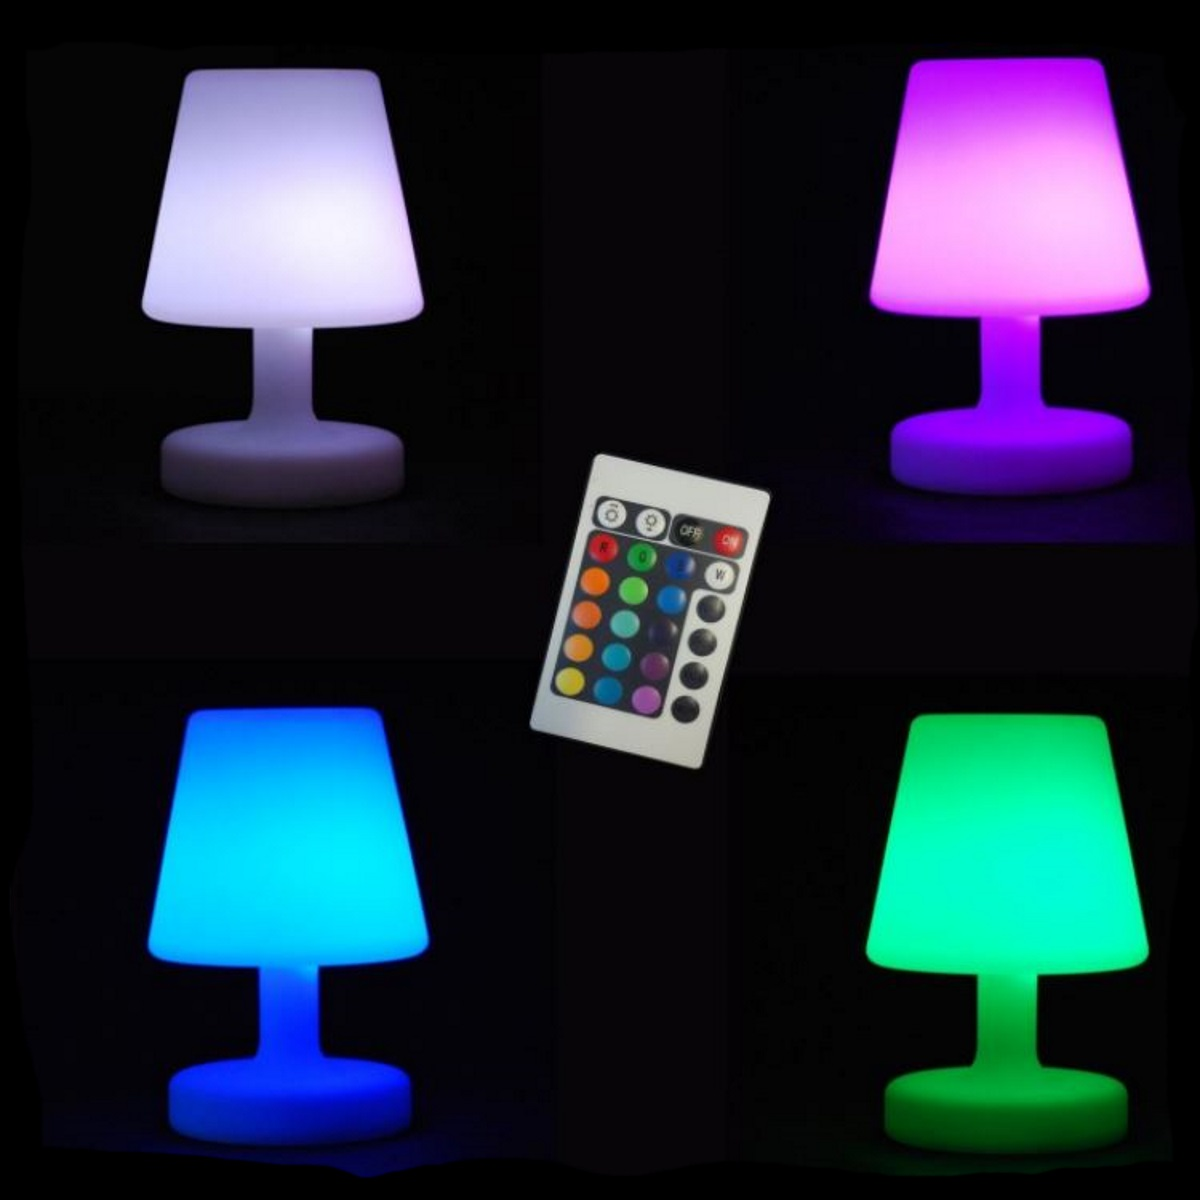 Lampe de table a led et telecommande 16 couleurs 2